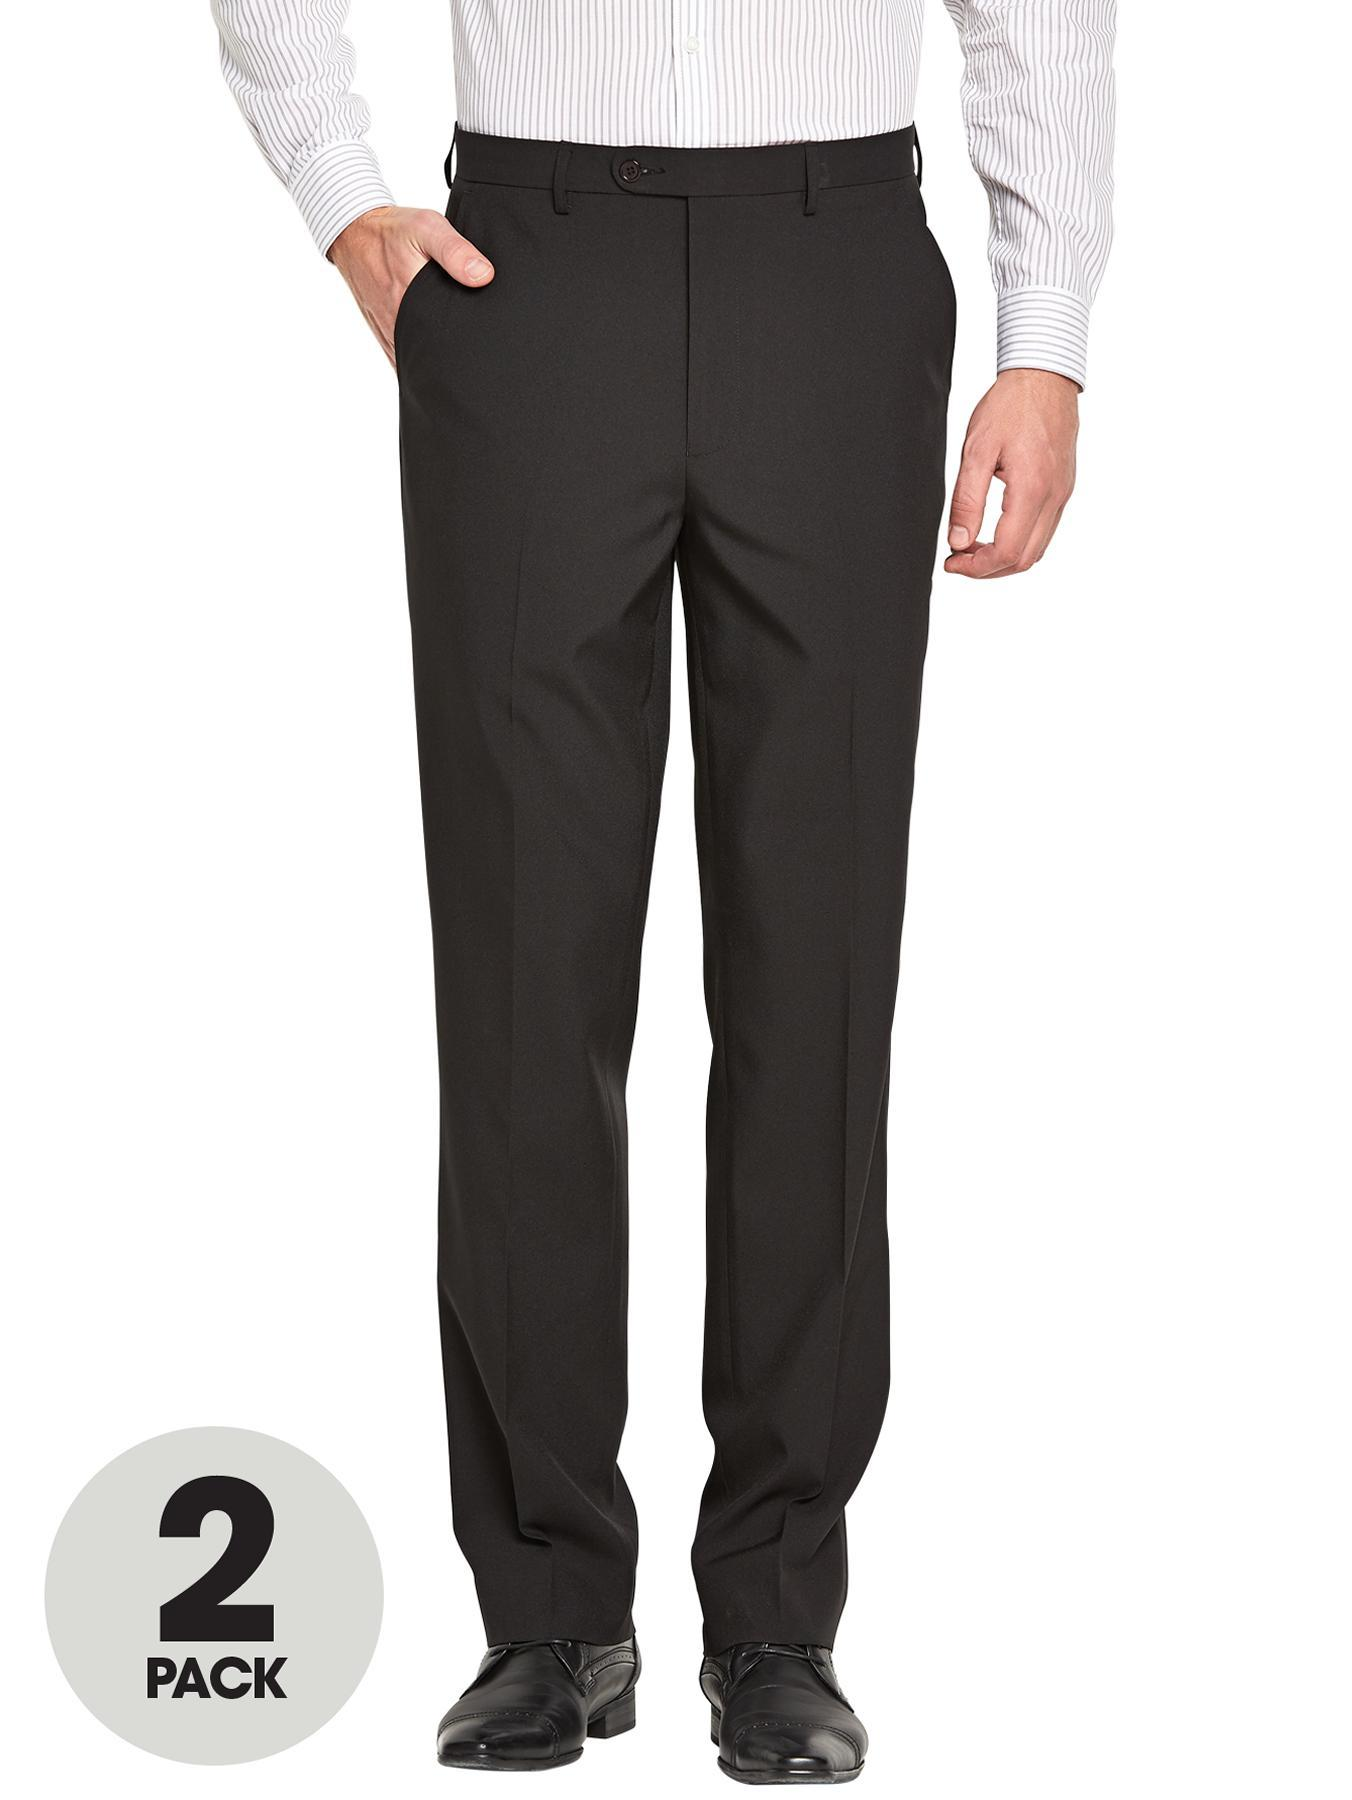 Mens Polyester Trousers (2 Pack), Black